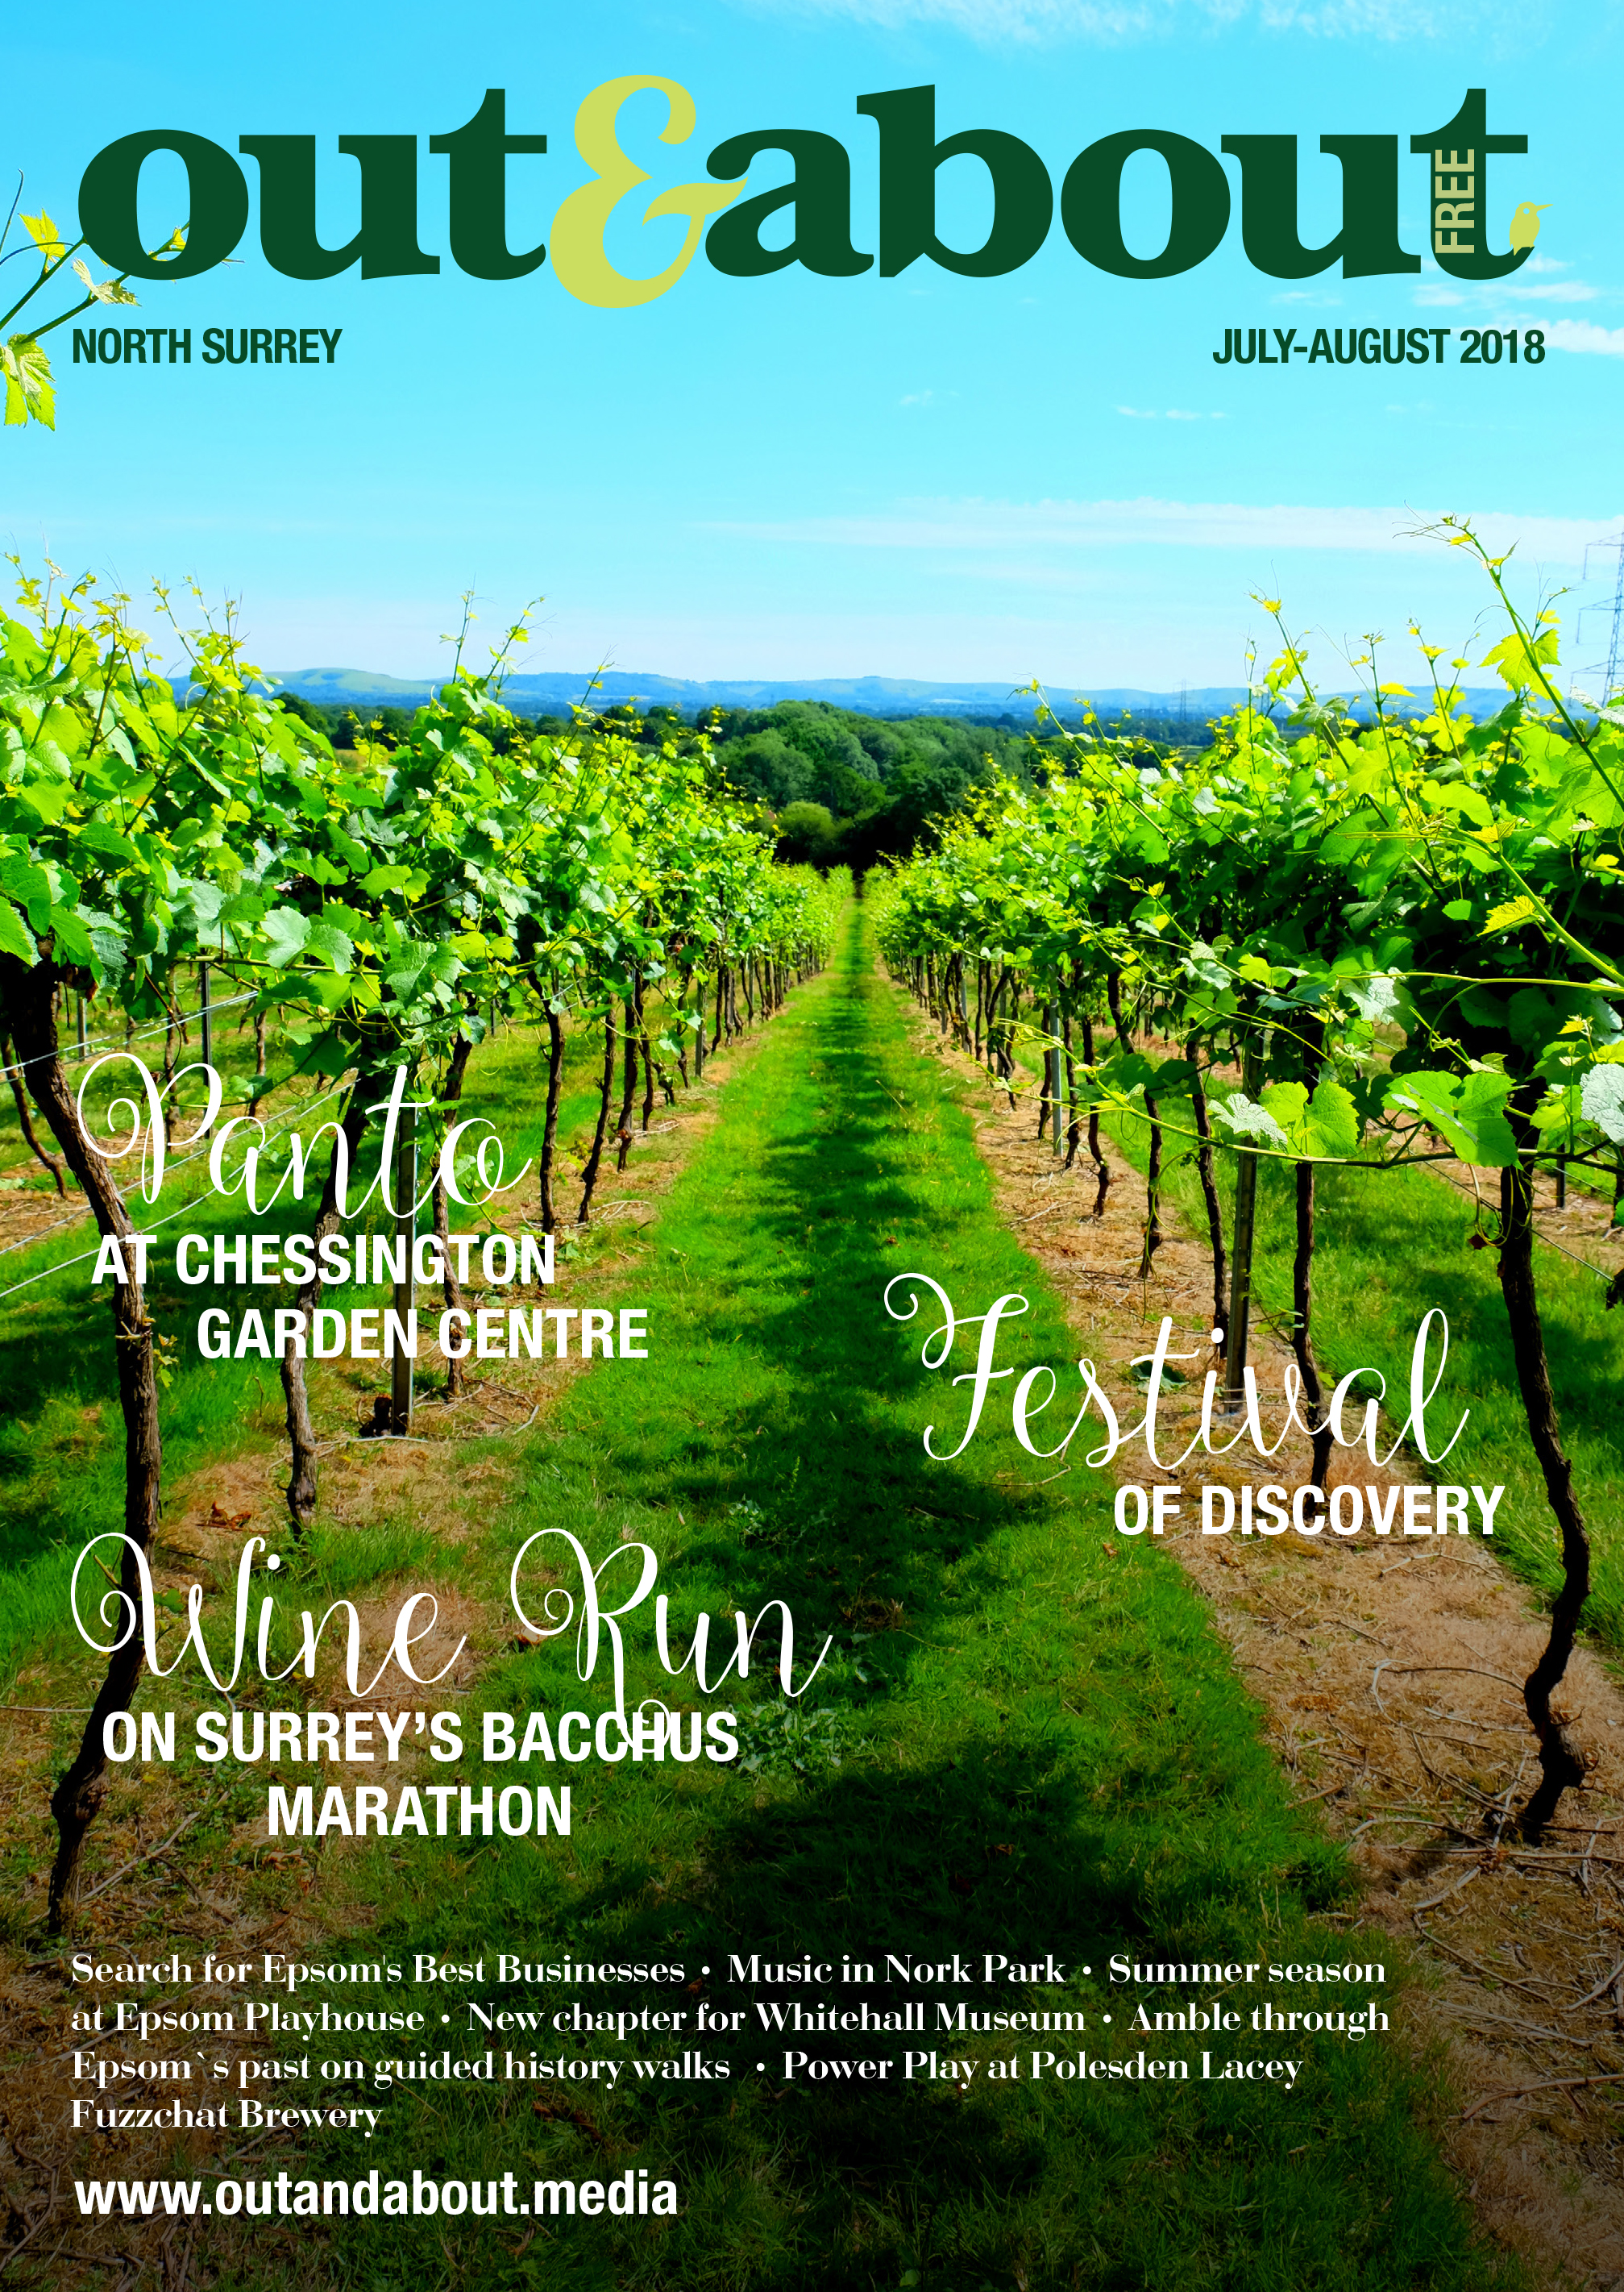 North Surrey - There's so much going on in North Surrey this July and August, with the Festival of Discovery, the Wine run and the panto at Chessington Garden Center. Read all about it!Click here to read previous editions